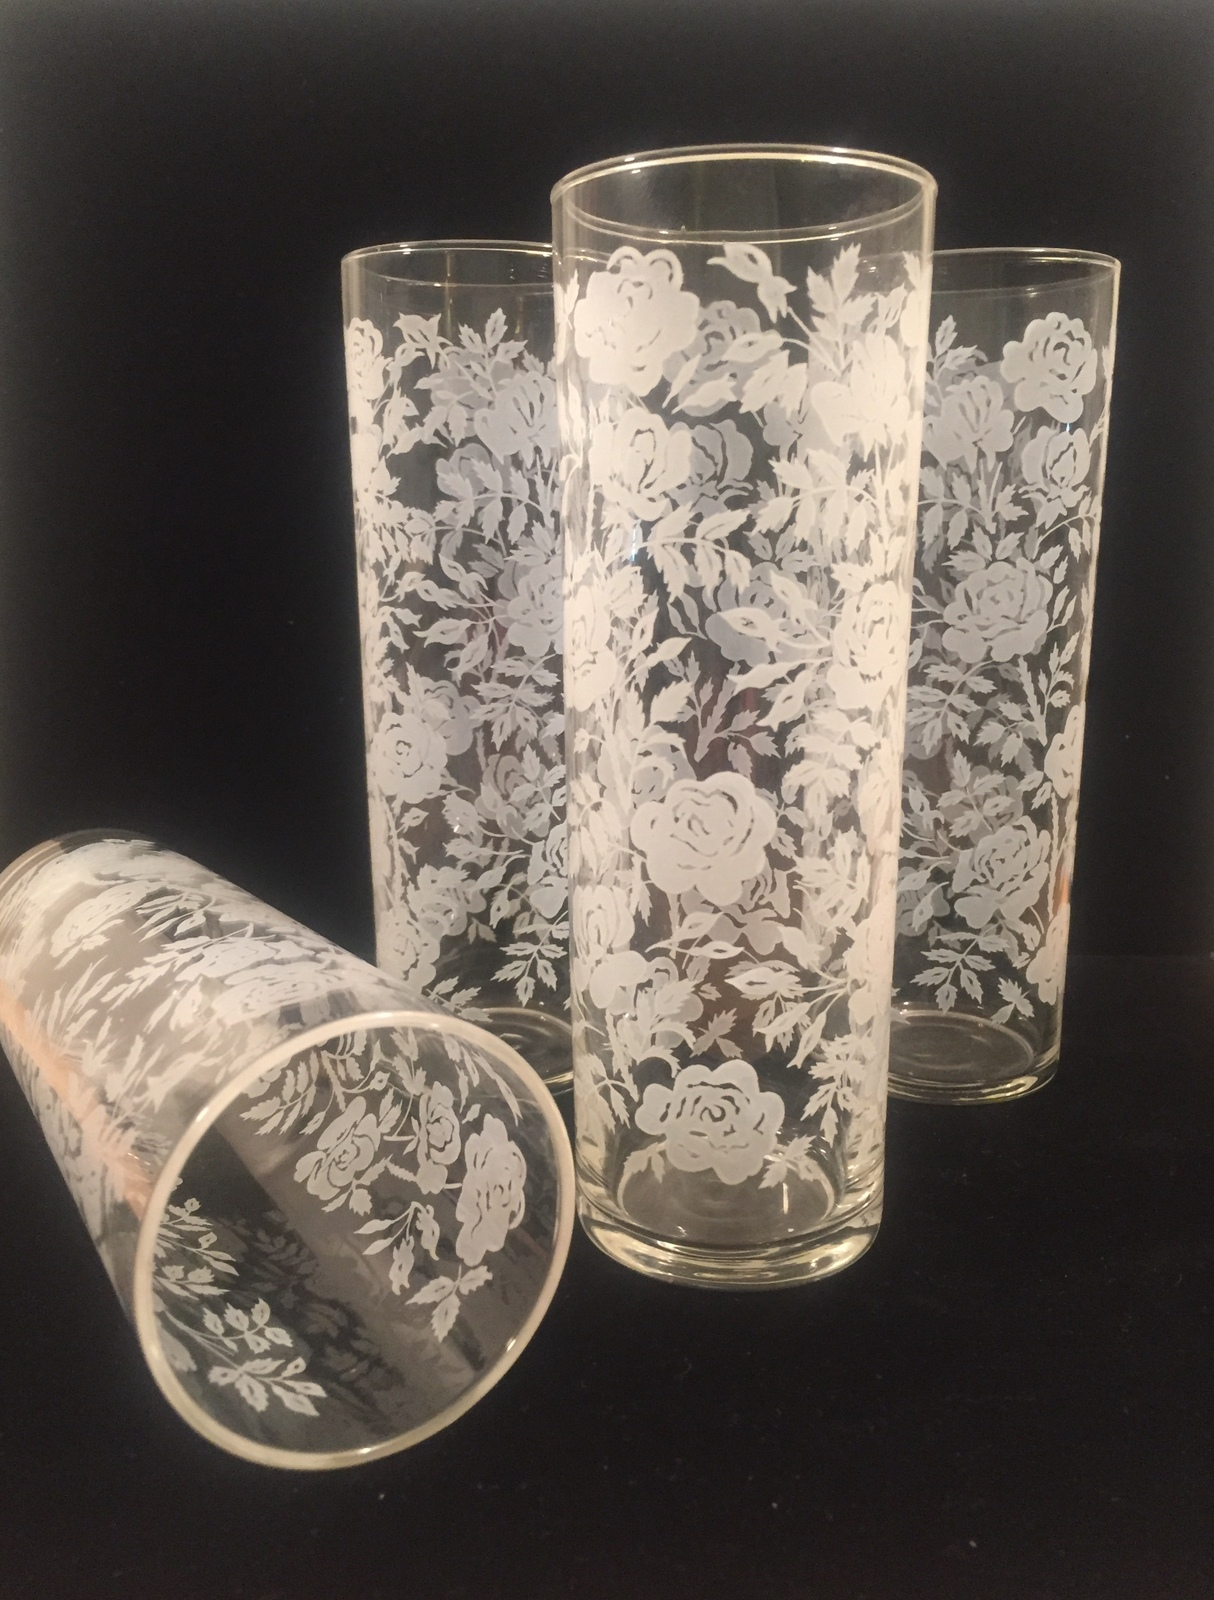 Vintage 70s Libbey White Roses pattern collins glasses set of 4